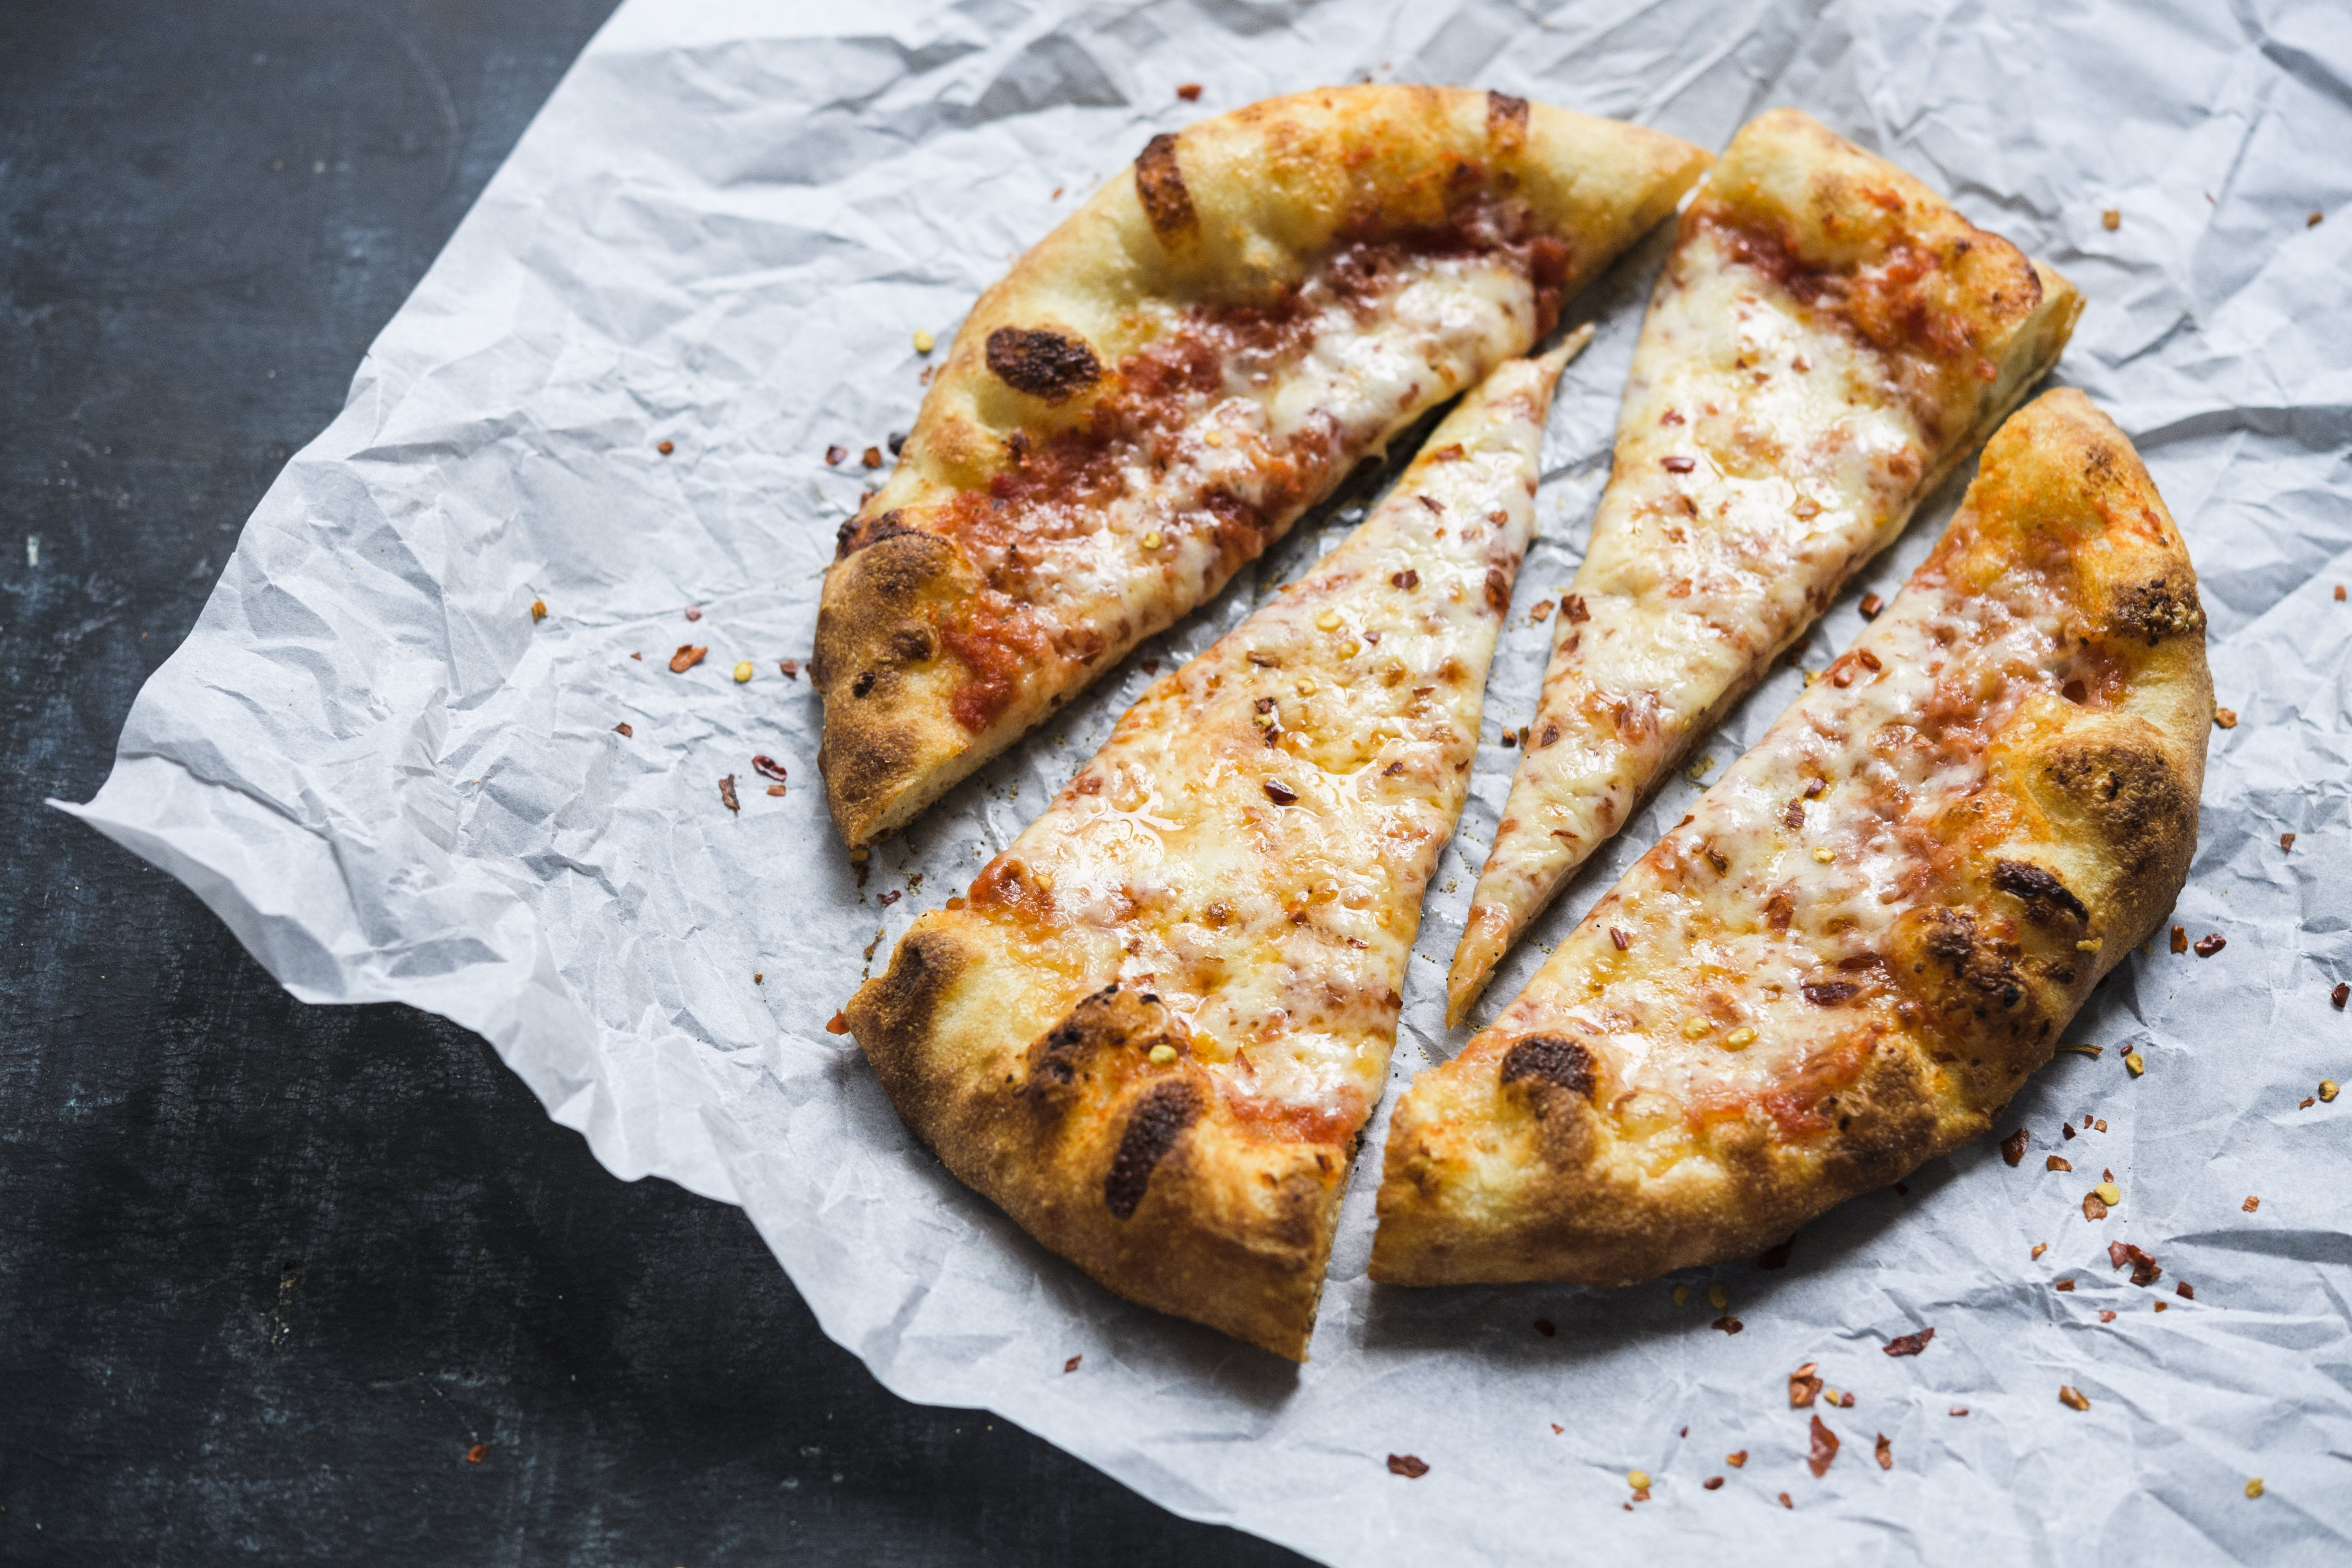 5 Tips for Making Better Pizza at Home